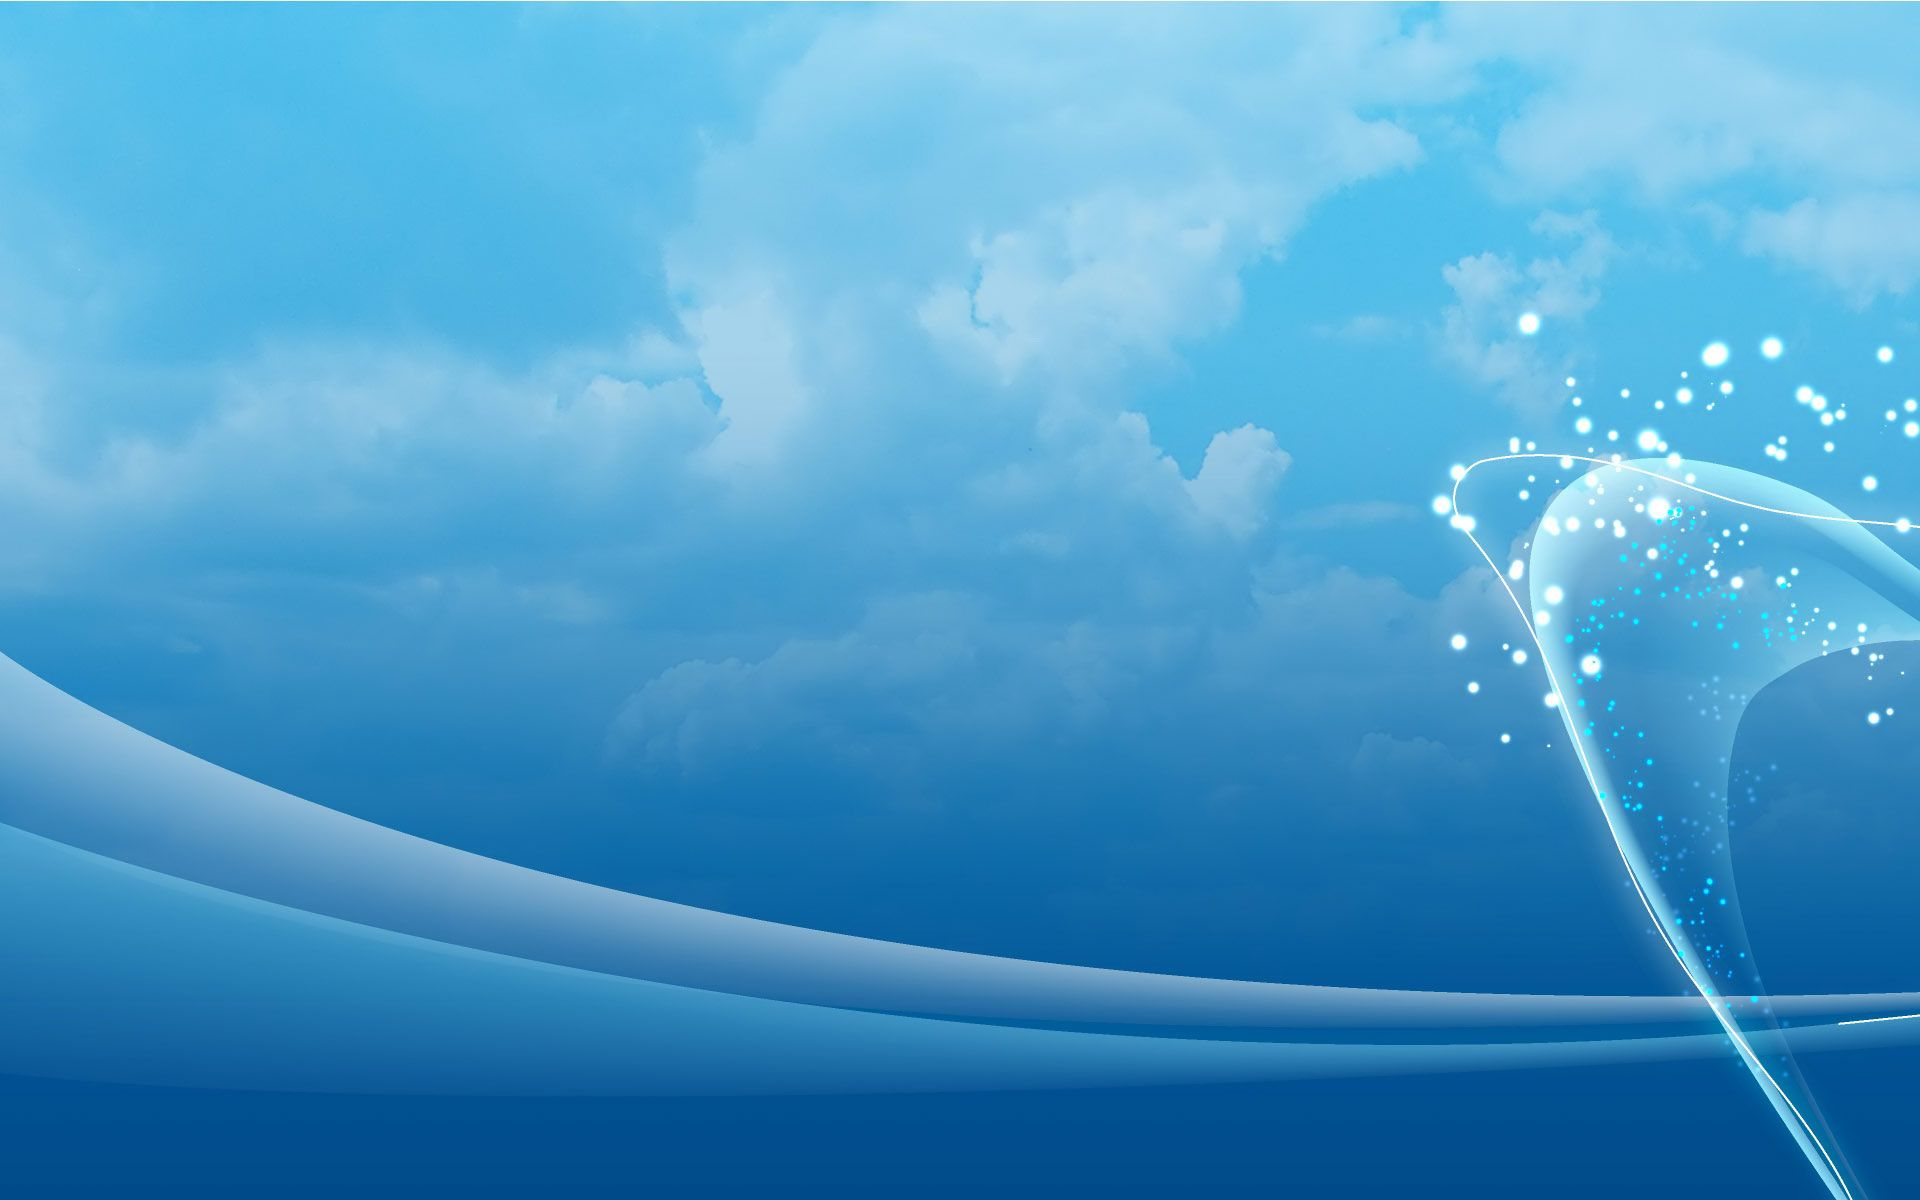 Abstract Blue Sky Blue Background Wallpapers Blue Sky